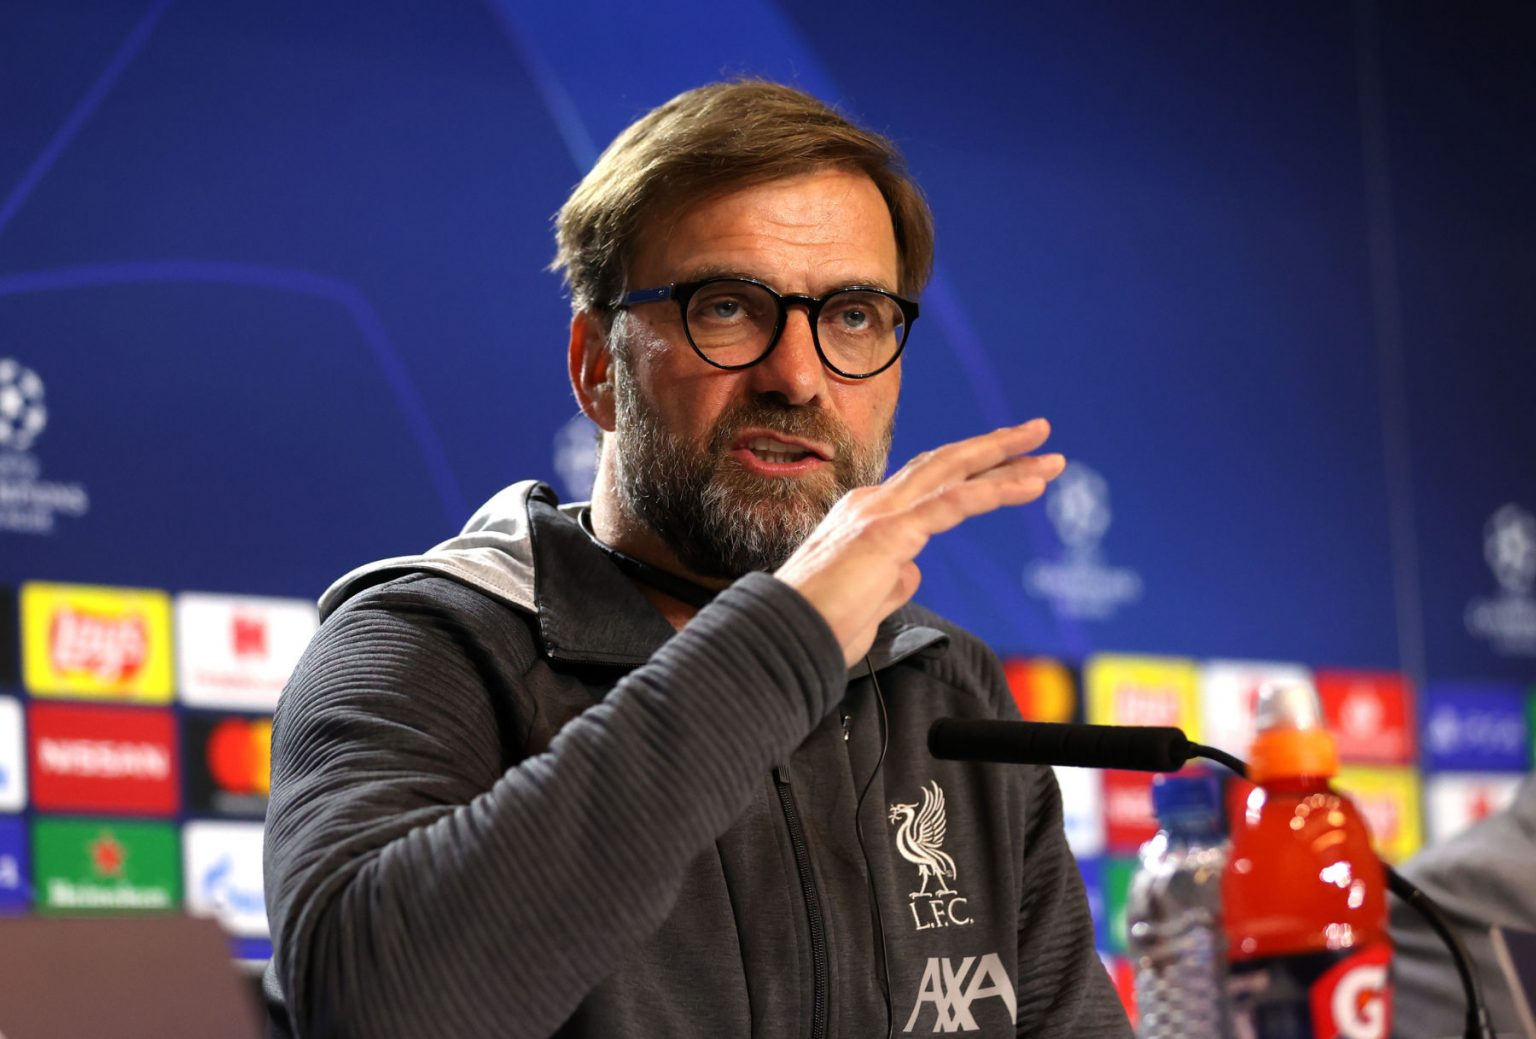 Man Utd vs Liverpool: Klopp reveals how they will prepare for EPL crunch tie